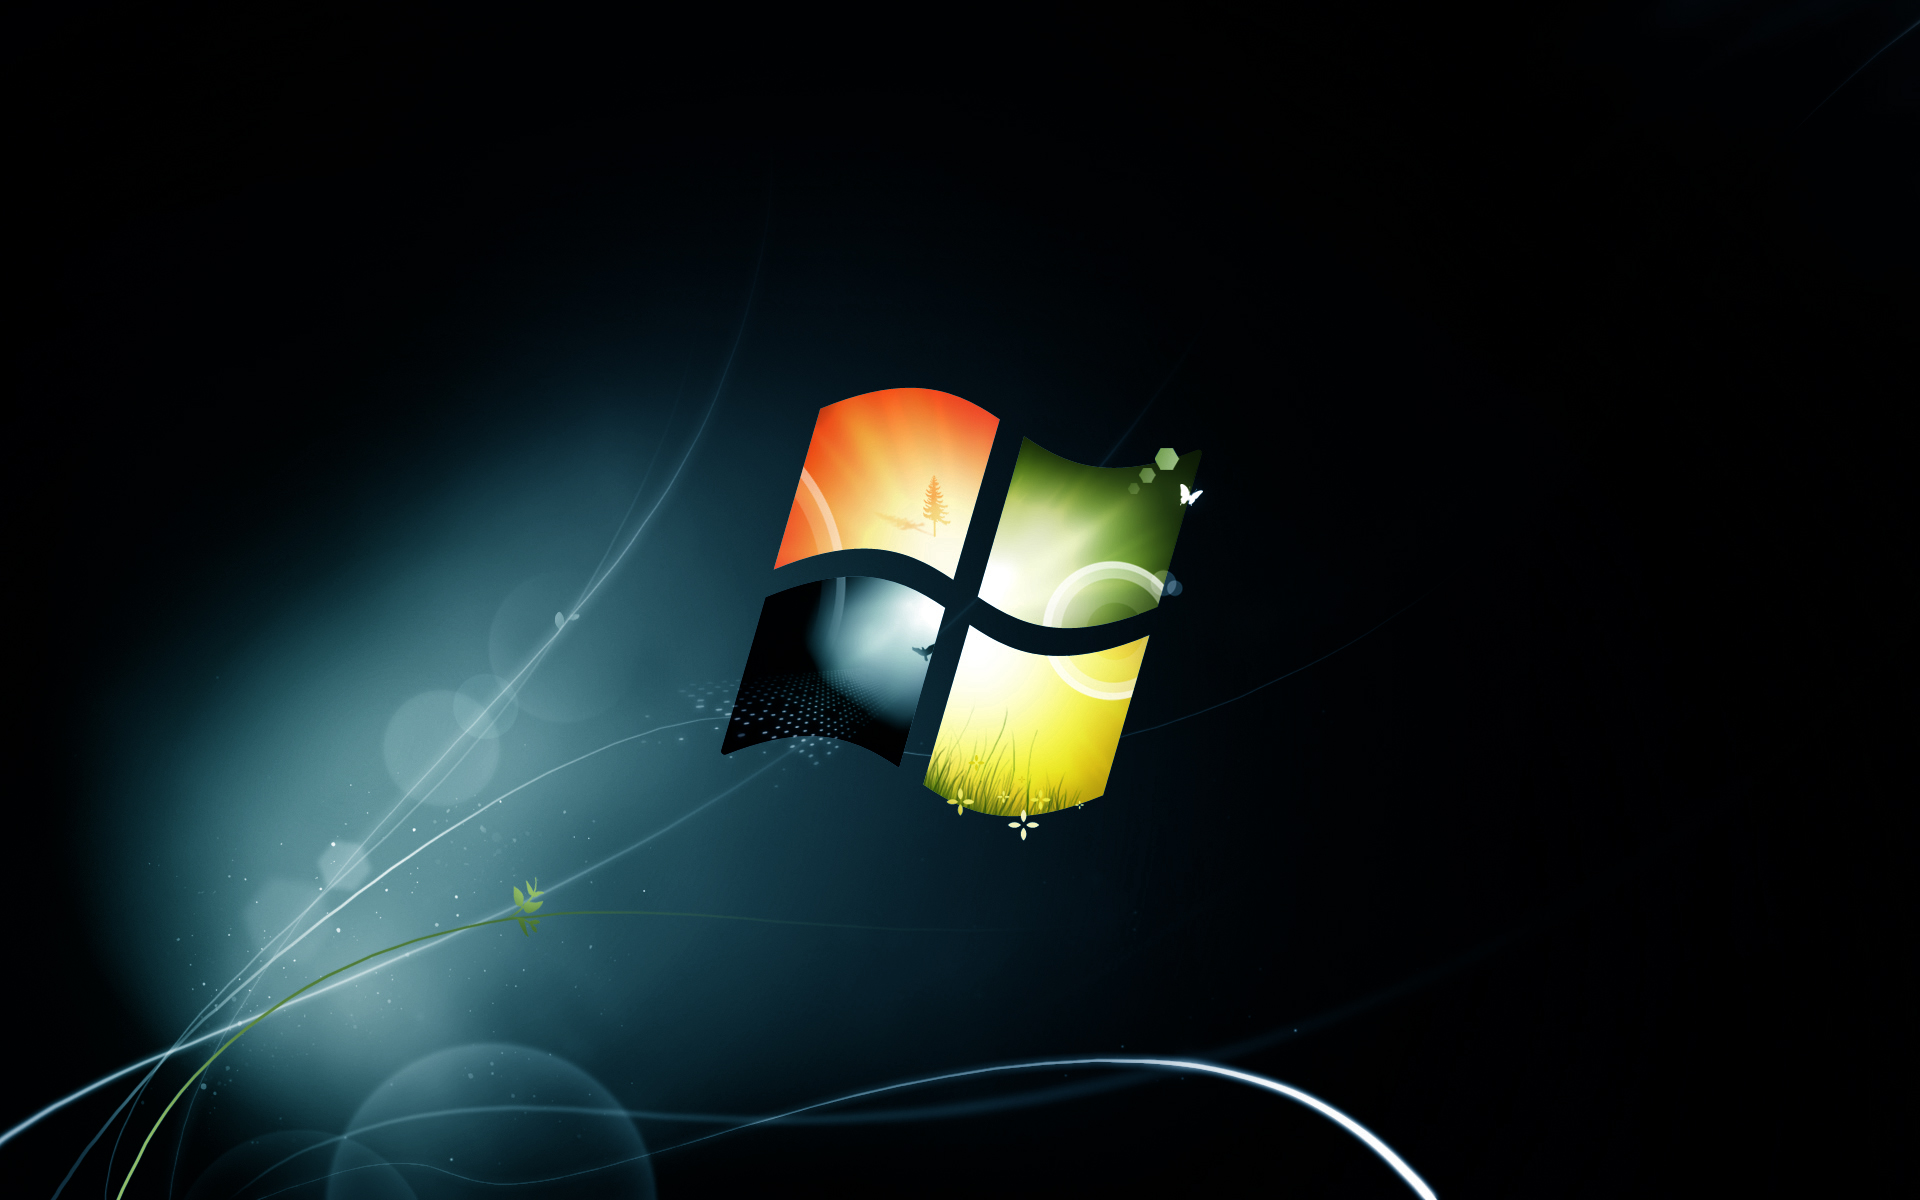 file name windows 7 black wallpaper posted piph category windows 1920x1200